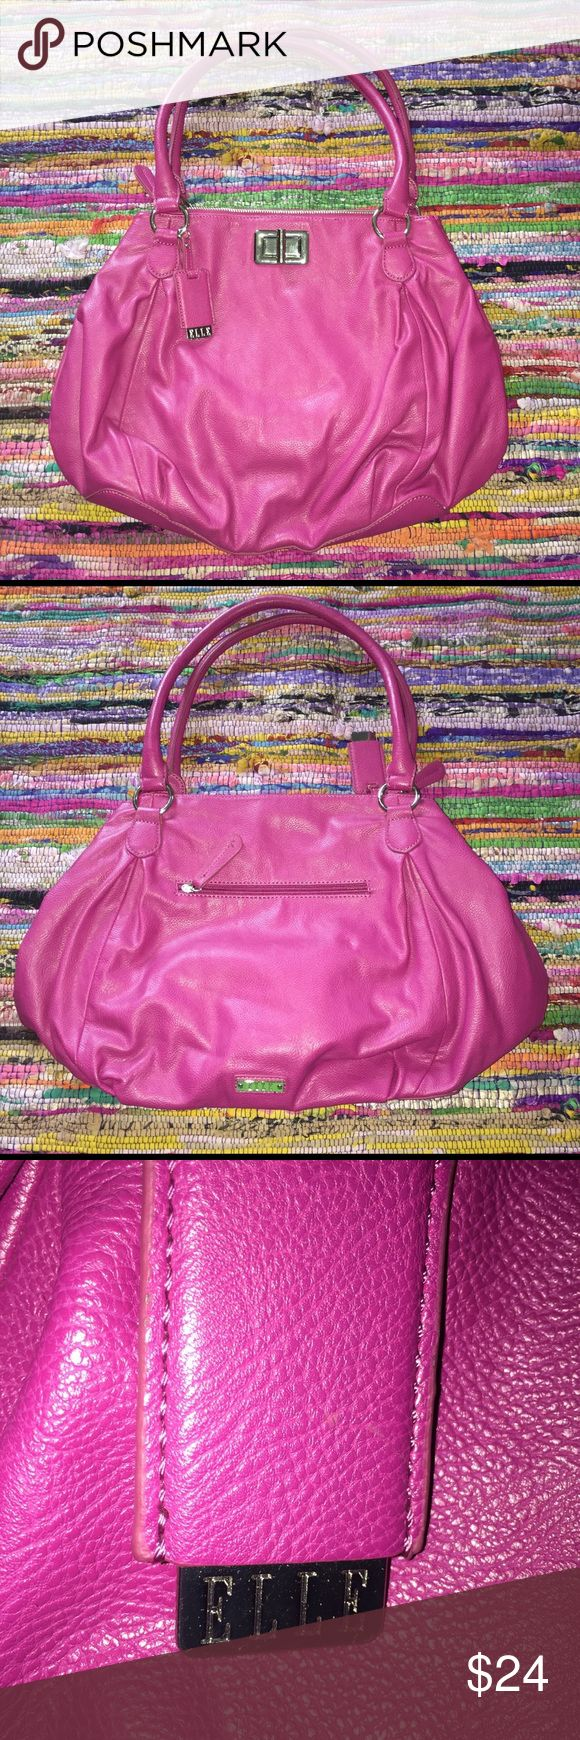 Elle Purse Elle pink purse. Never used in excellent condition. Strap drop 9 1/2'. Width 18'. Length 13'. Elle Bags